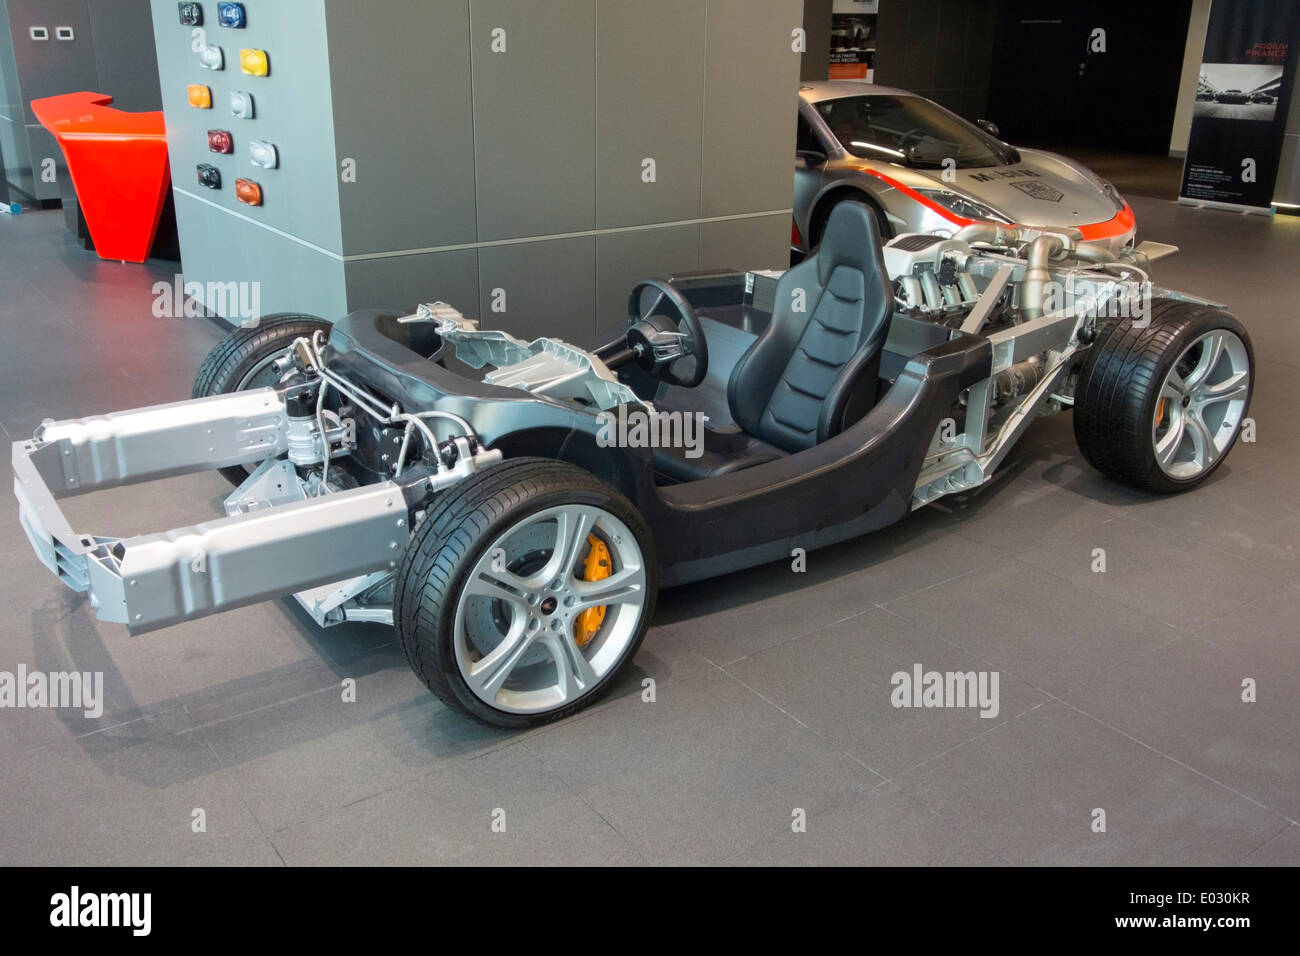 McLaren MP4 12C Sports Car Rolling Chassis Stock Photo: 68907883 - Alamy